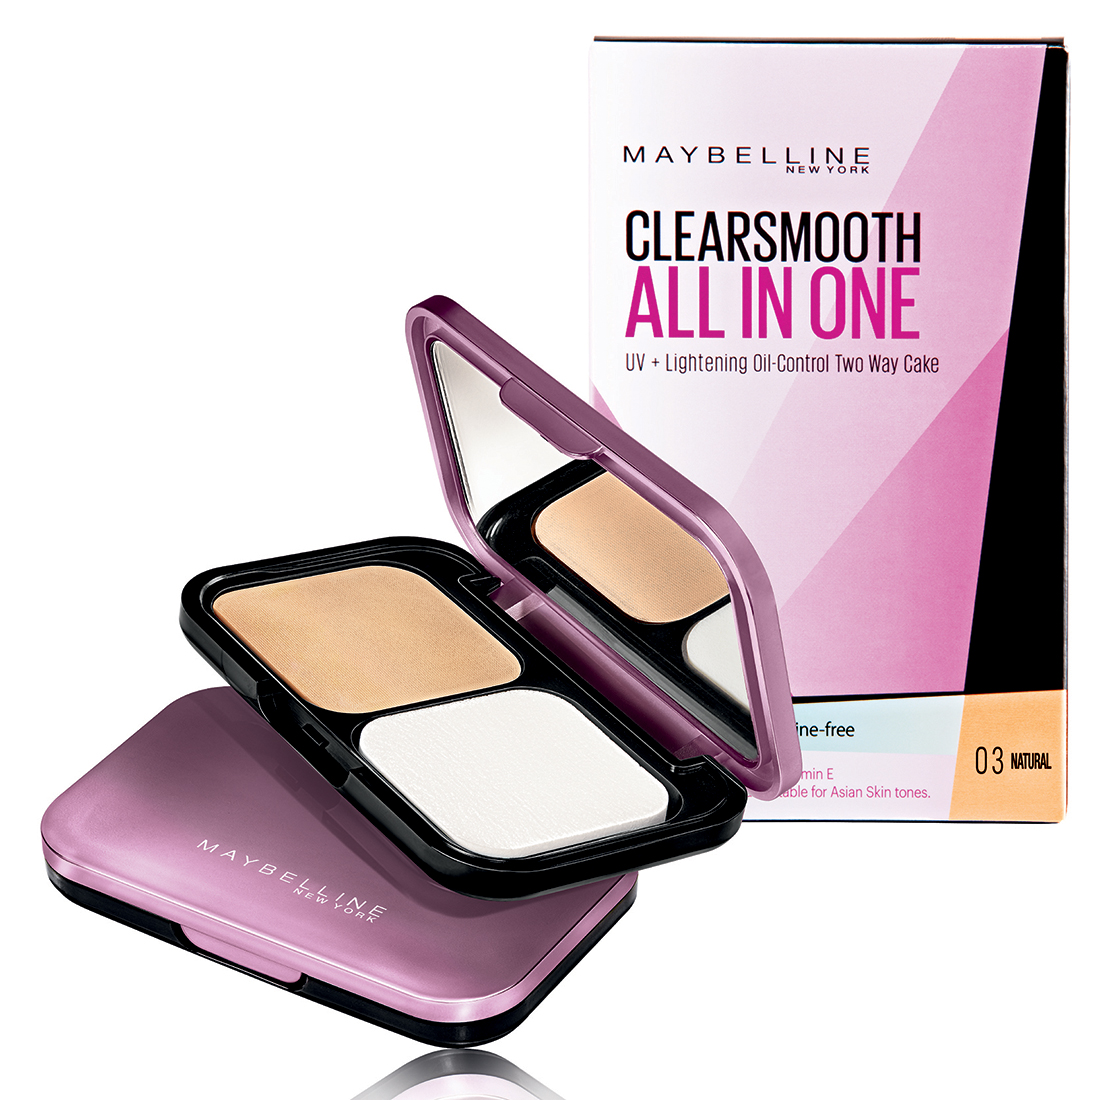 Phấn Phủ Maybelline Clearsmooth All In One 5 In 1 #03 Natural